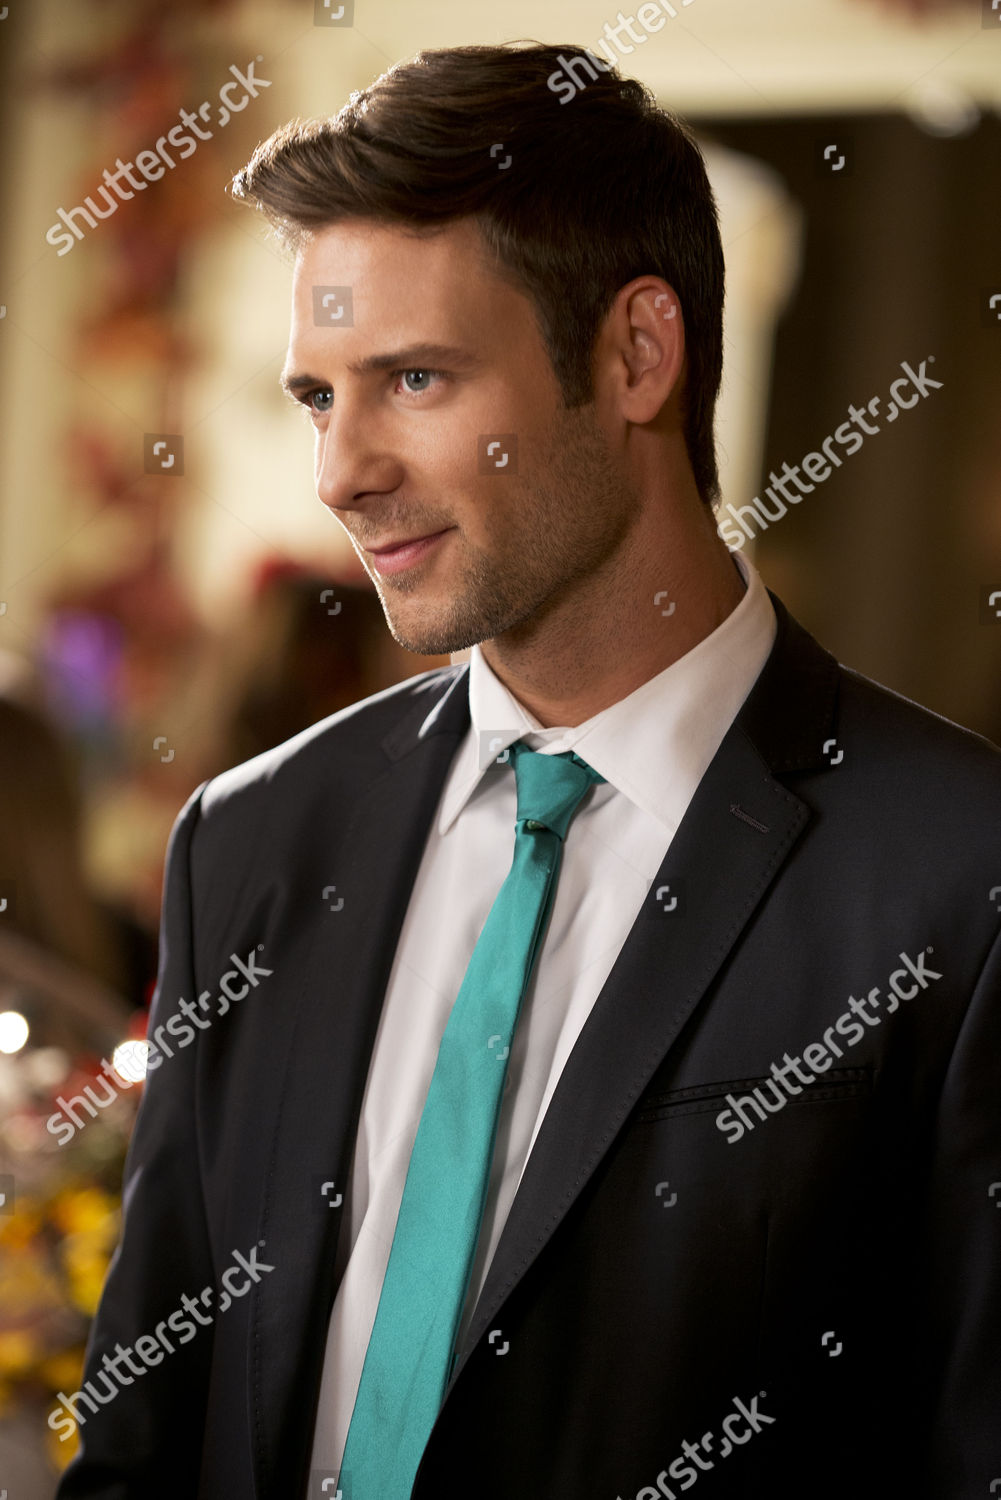 Best Christmas Party Ever.Steve Lund Editorial Stock Photo Stock Image Shutterstock